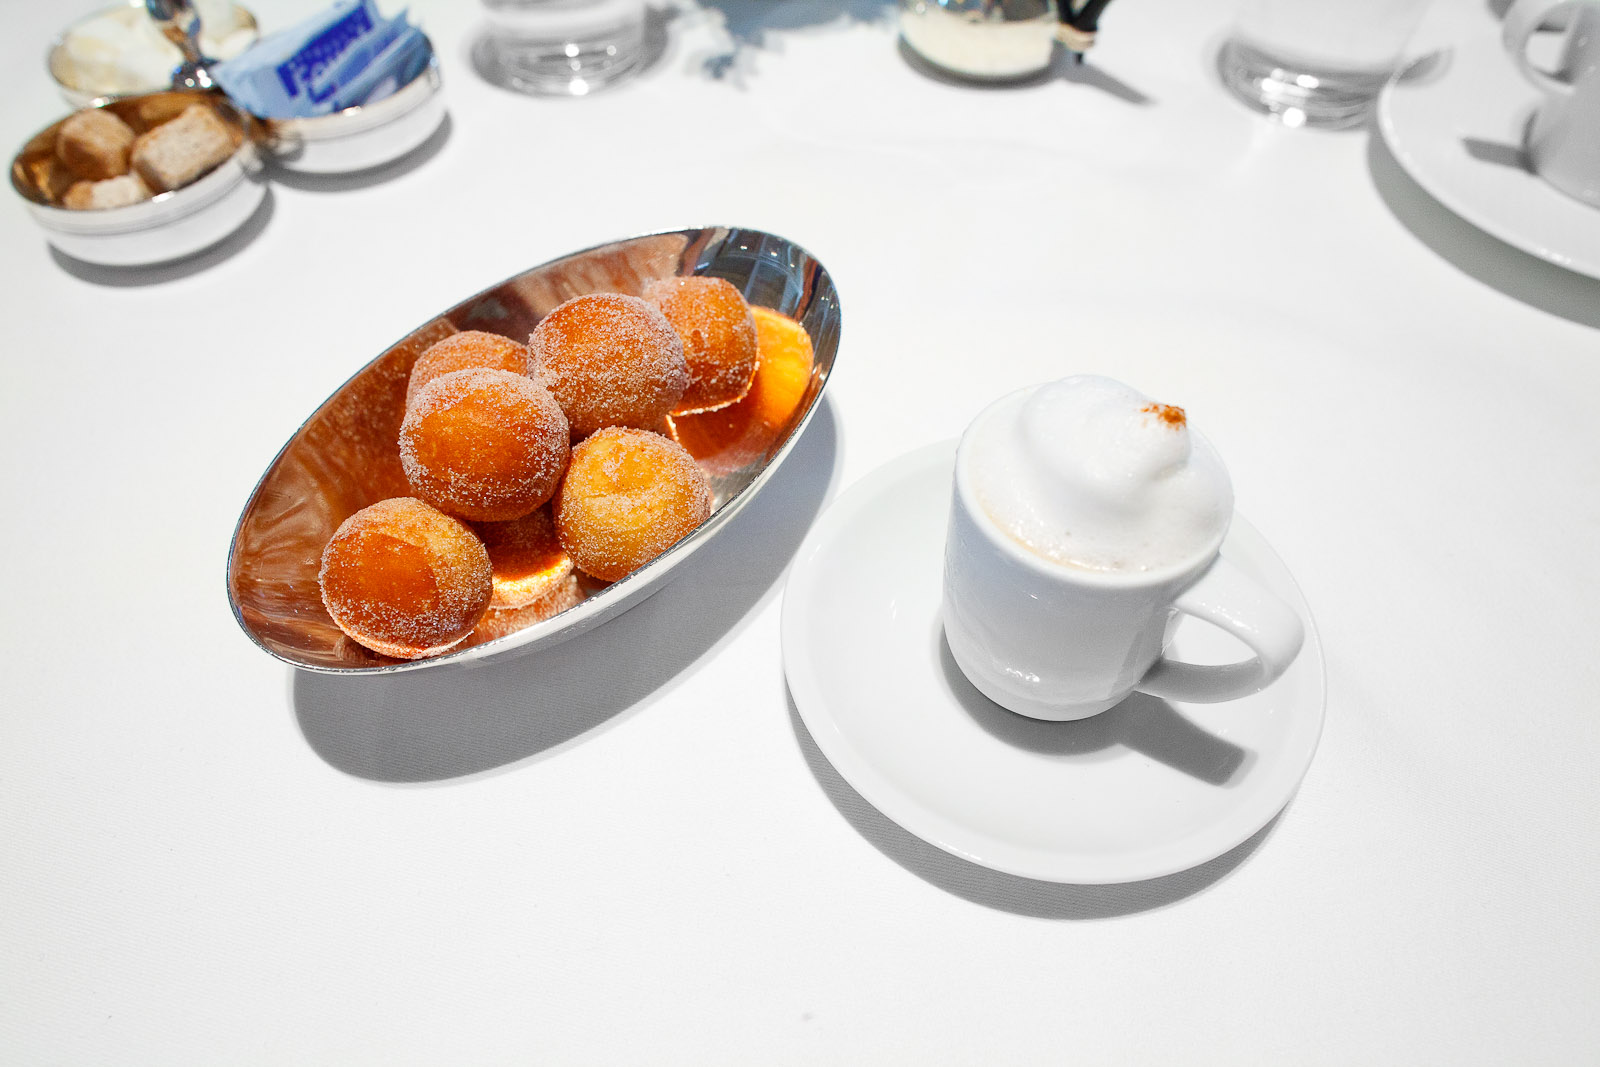 11th Course - Coffee and doughnuts